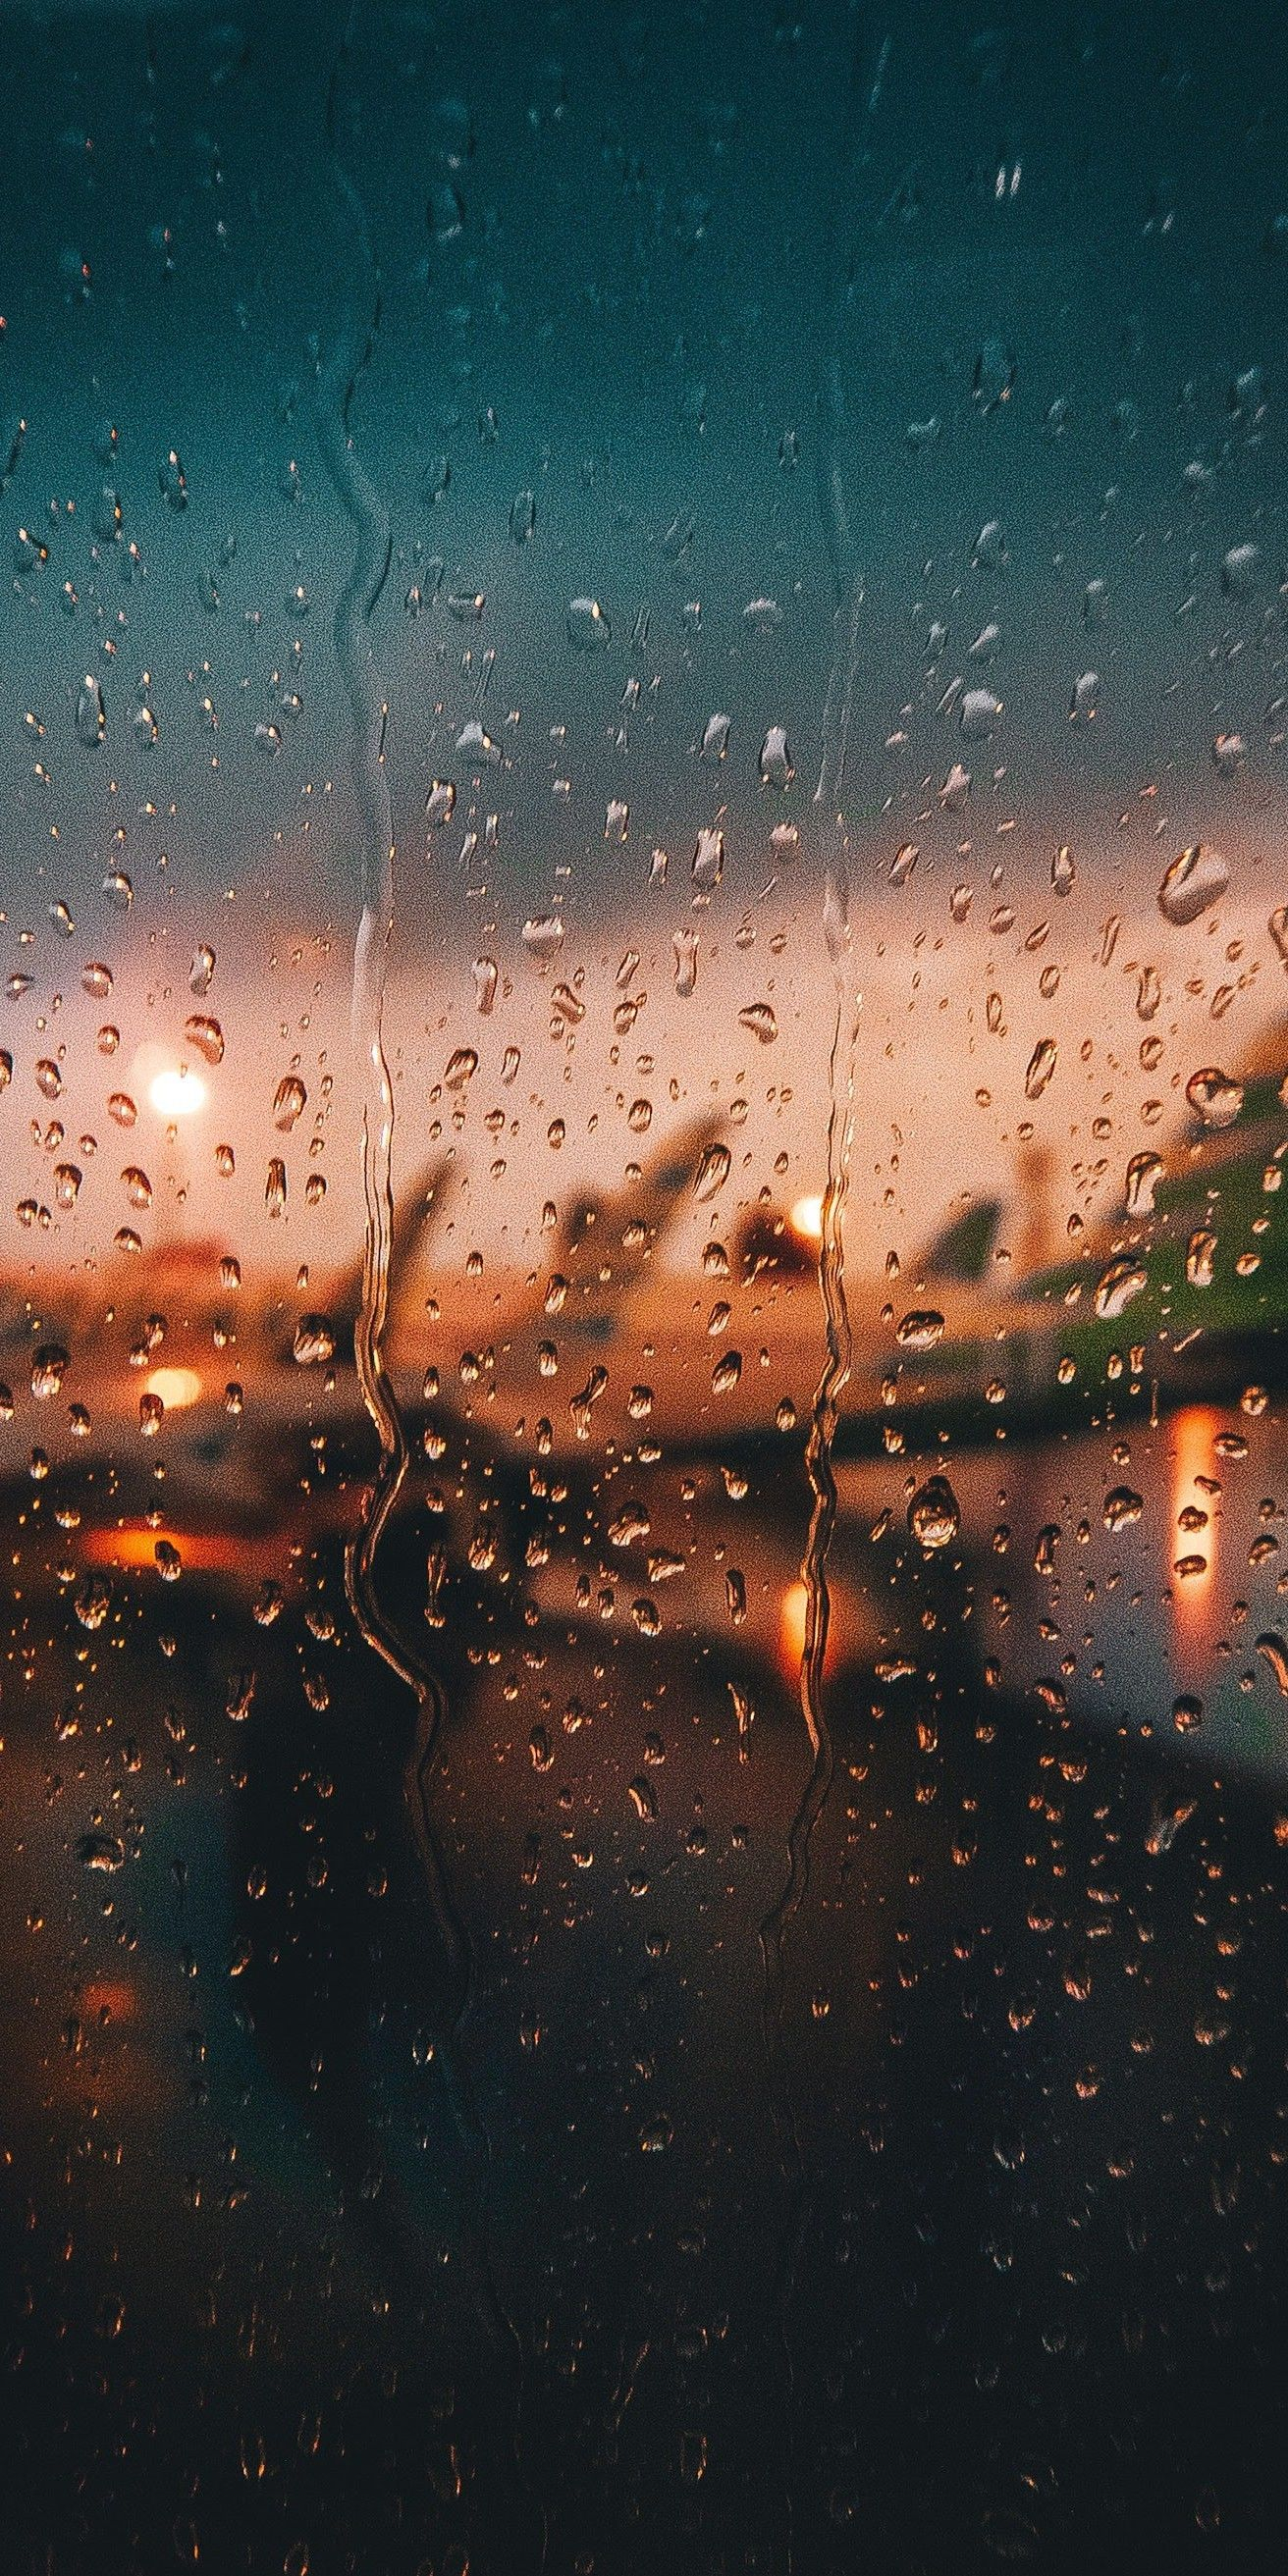 Pin By Iyan Sofyan On Rain With Images Rainy Wallpaper Iphone